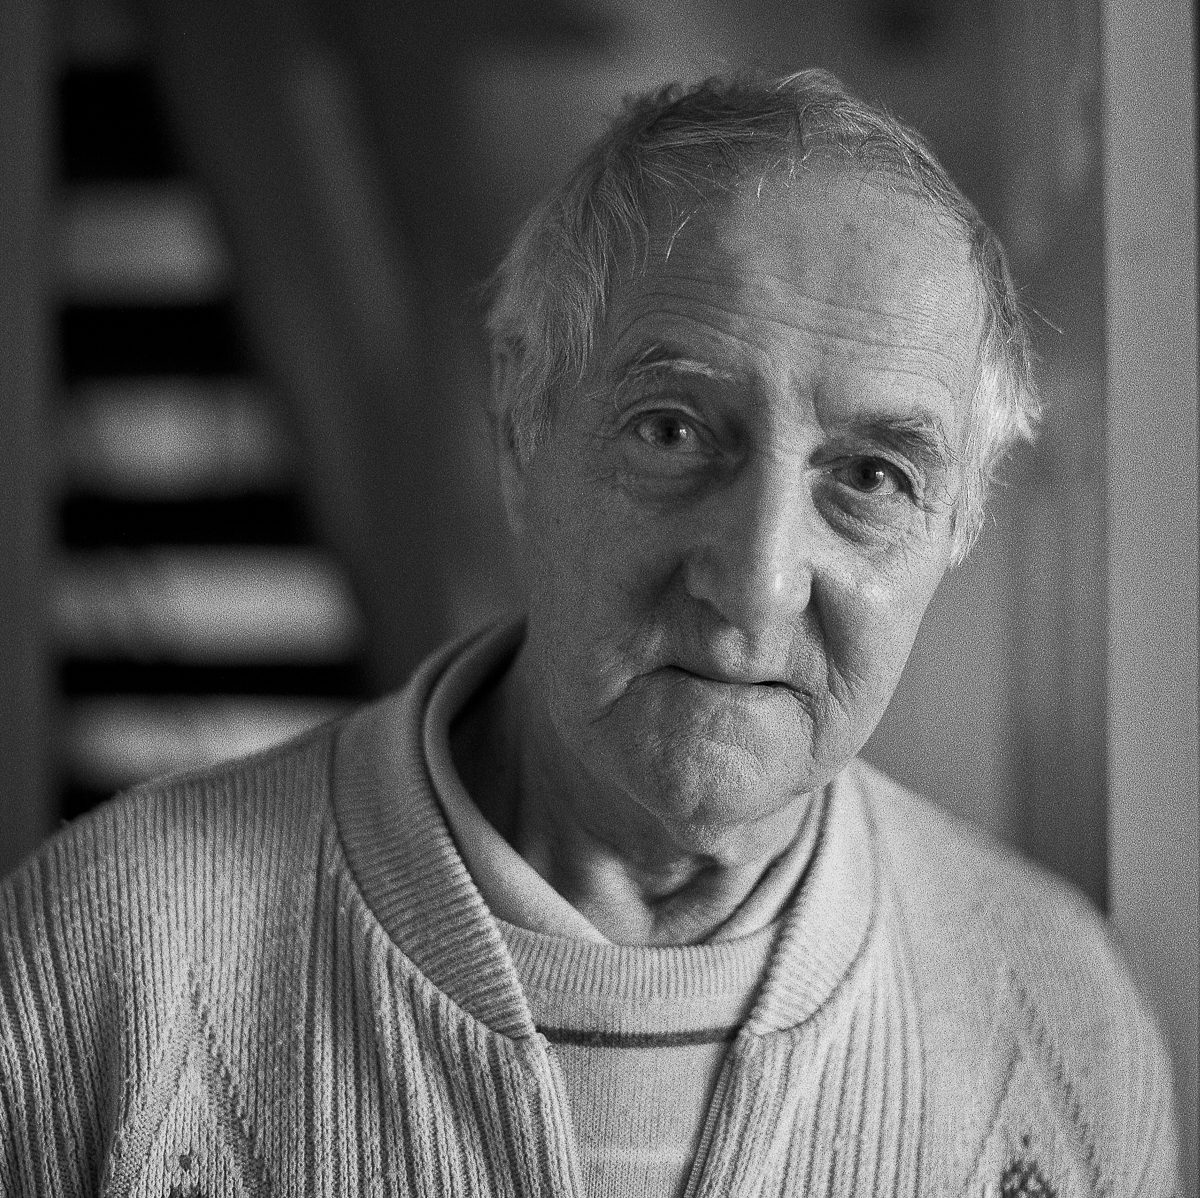 @timdobbsphoto · 18h One of my favorite portraits of my Dad on ilford Delta 400@800 using my Bronica SQai #ilfordphoto #fridayfavourites #filmfathers #believeinfilm